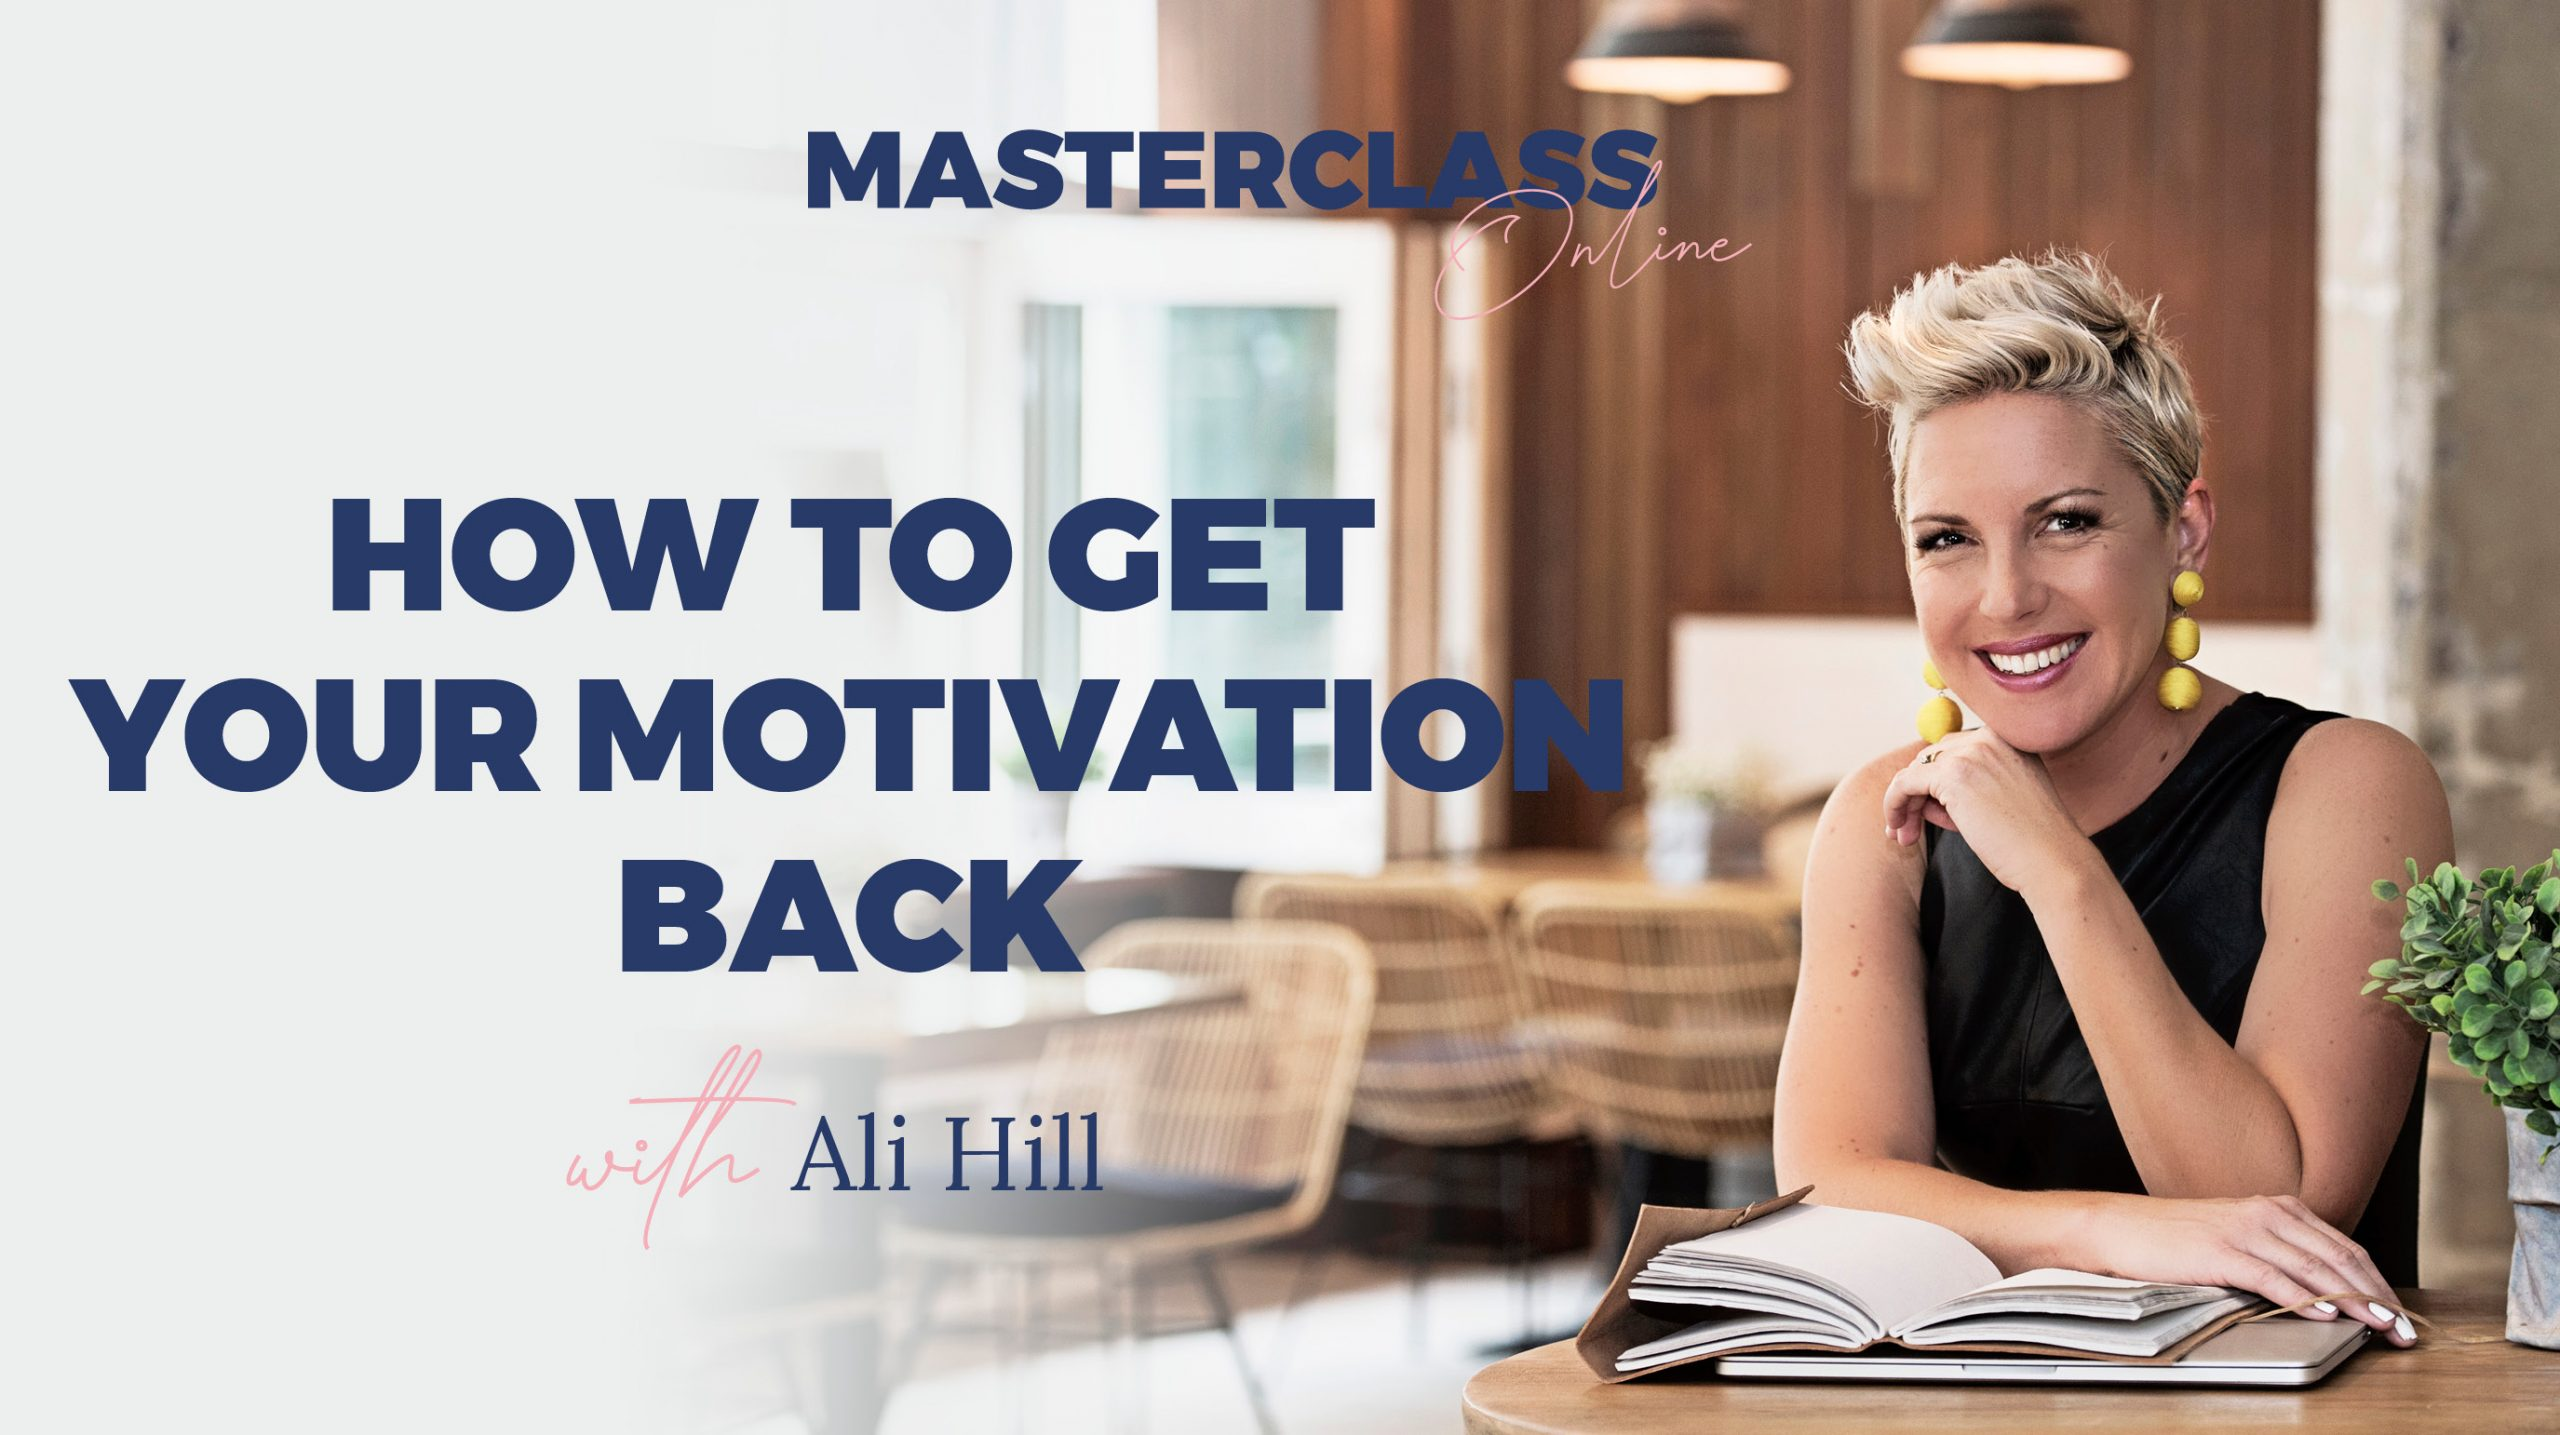 Masterclass: How to Get Your Motivation Back